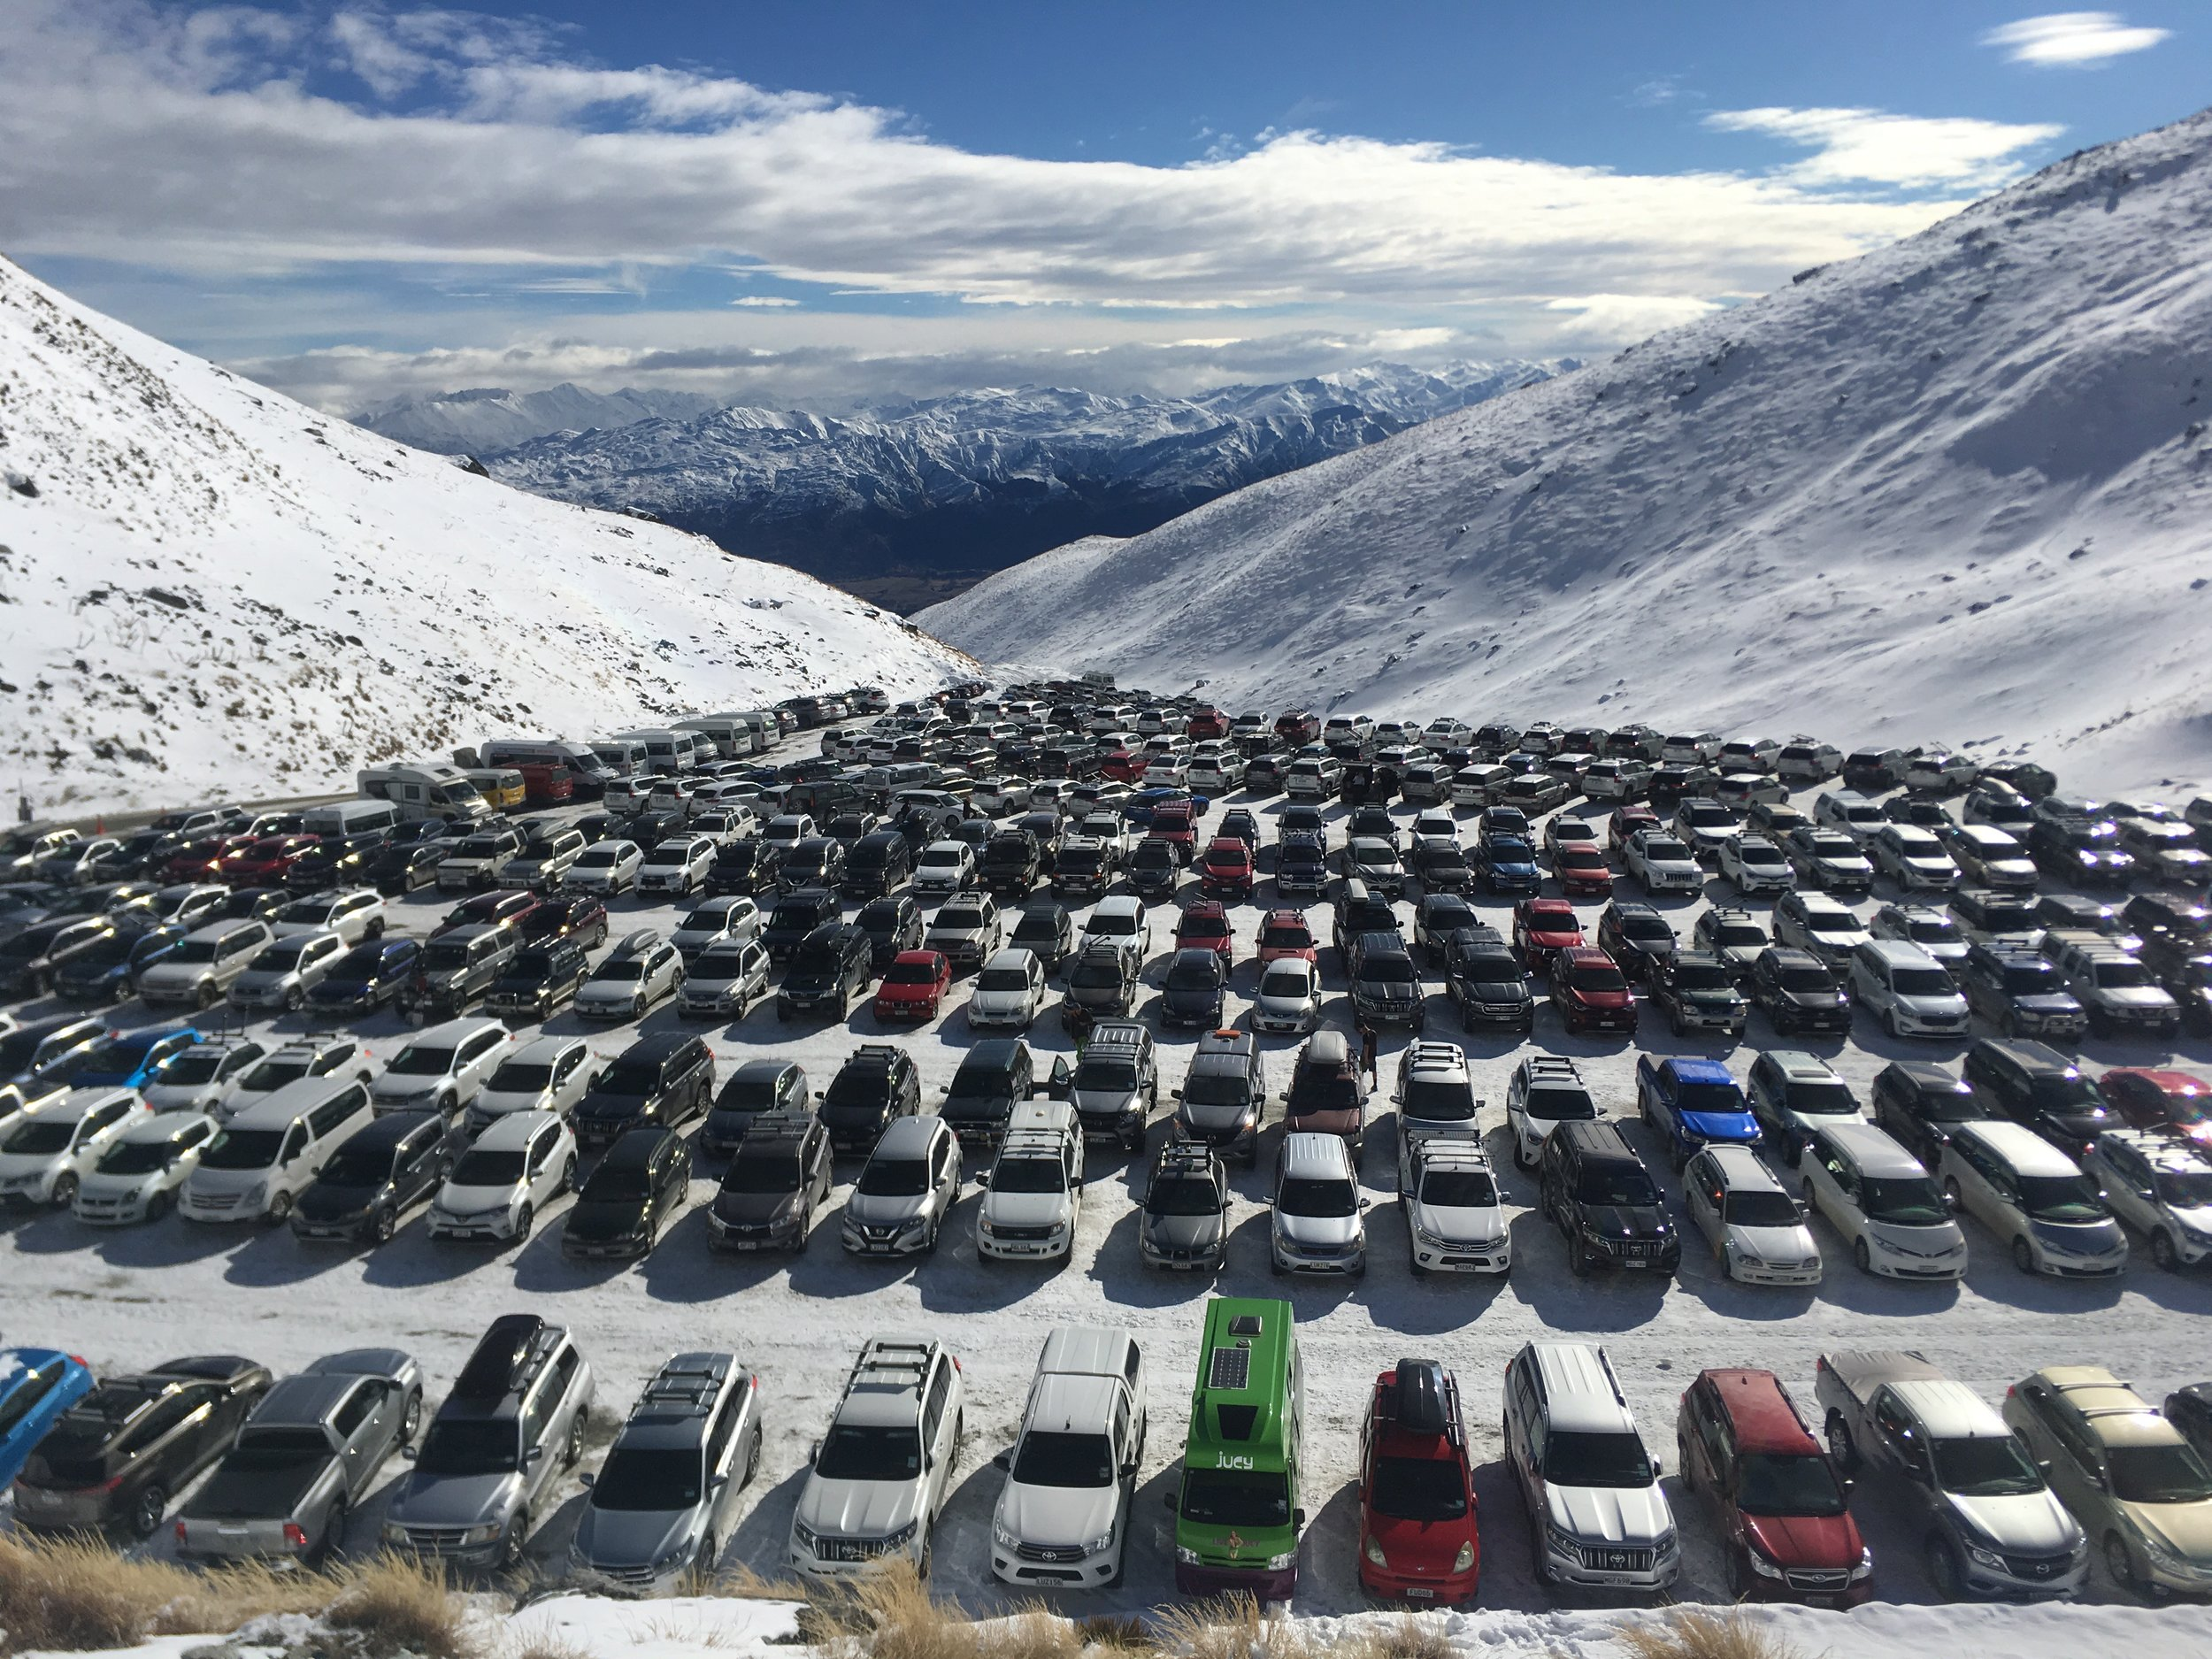 Pristine parking at high altitude